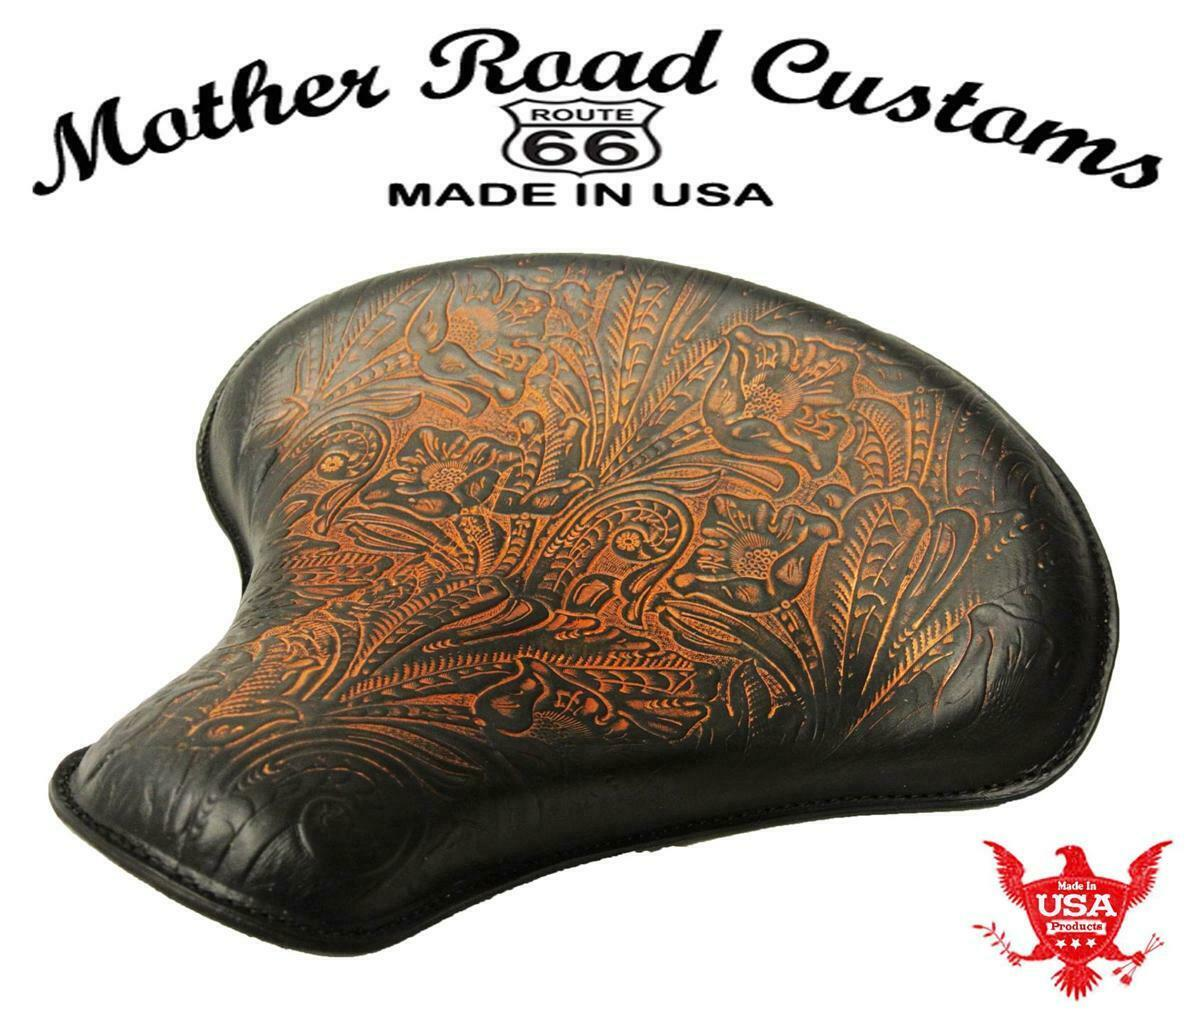 Spring Seat Chopper Bobber Harley Sportste 15x14 Tractor Ant Brn Tooled Leather Mother Road Customs